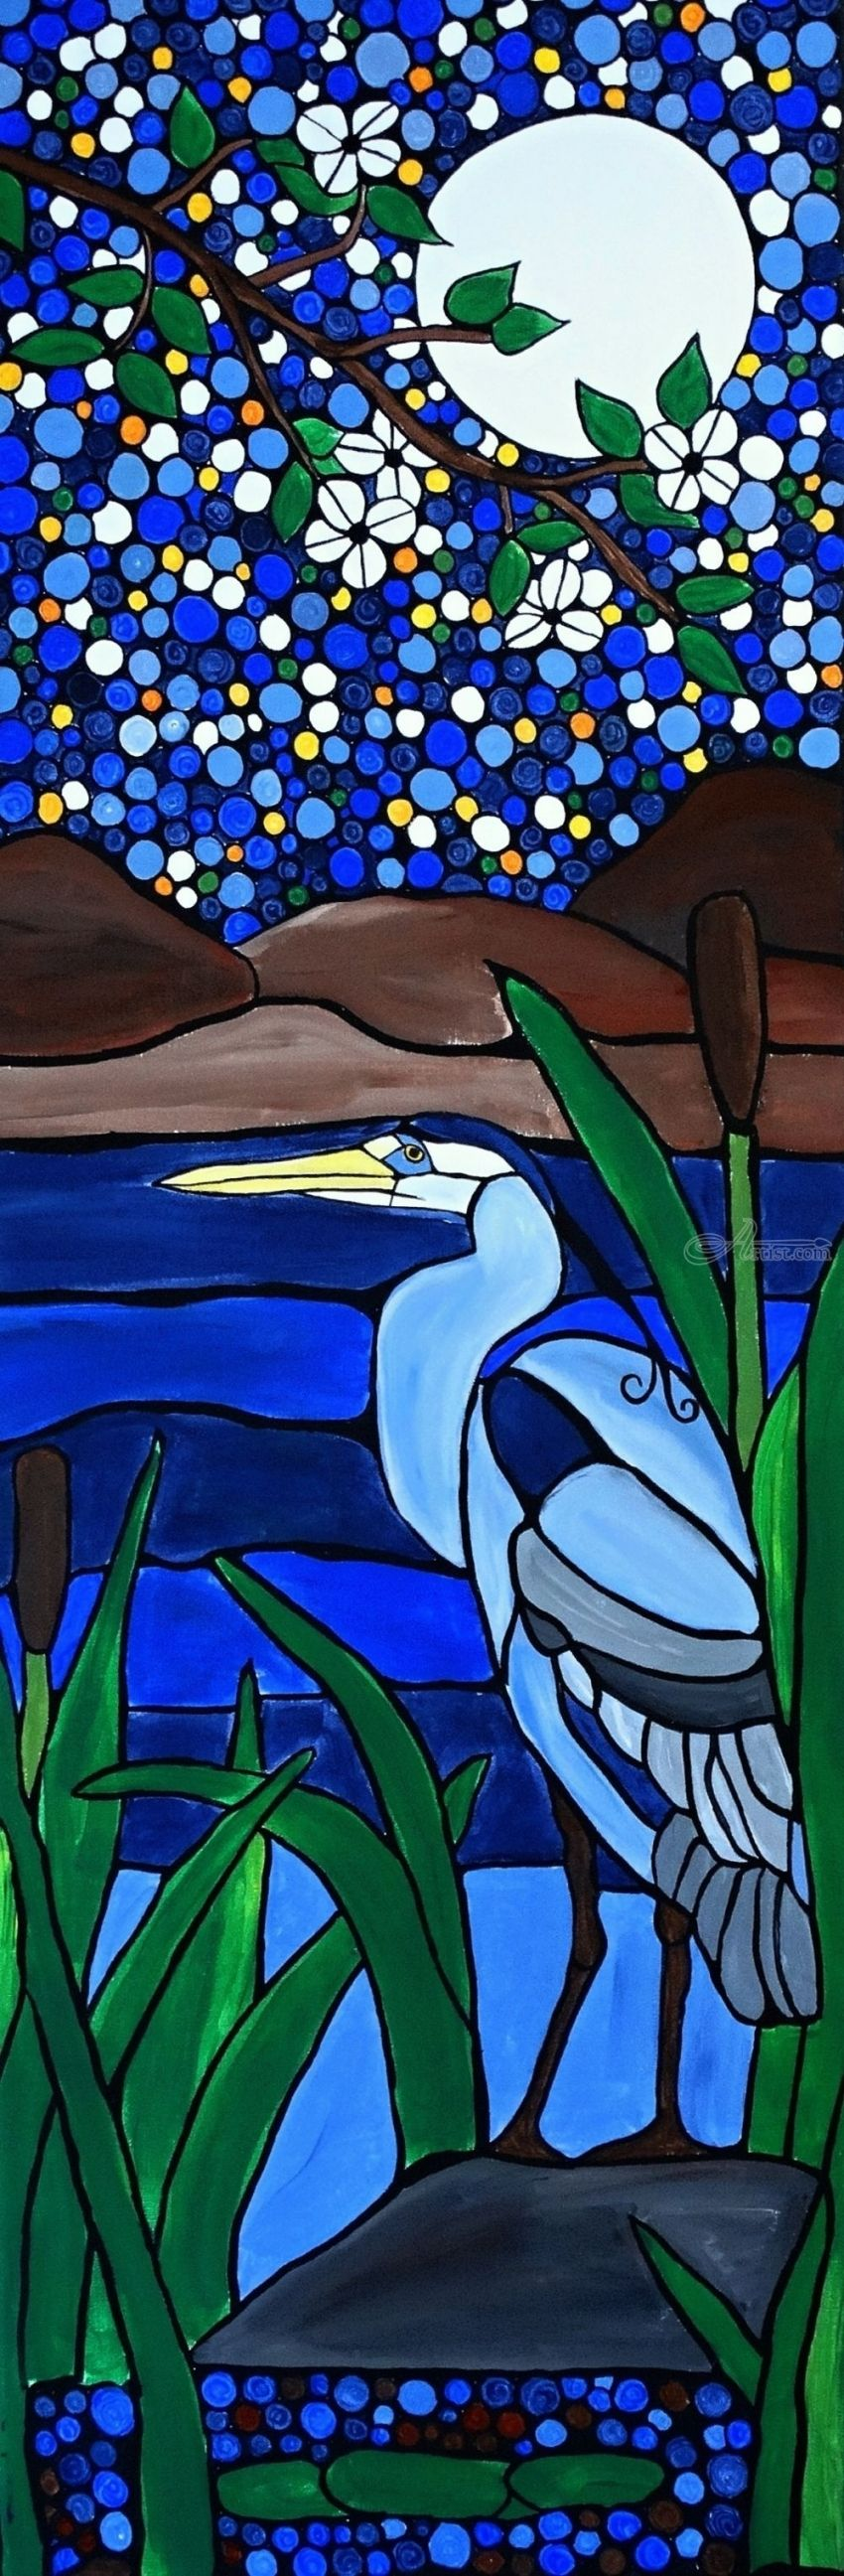 Blue heron, Paintings, Abstract, Expressionism, Fine Art, Animals, Botanical, Acrylic, Canvas, By Rachel Olynuk